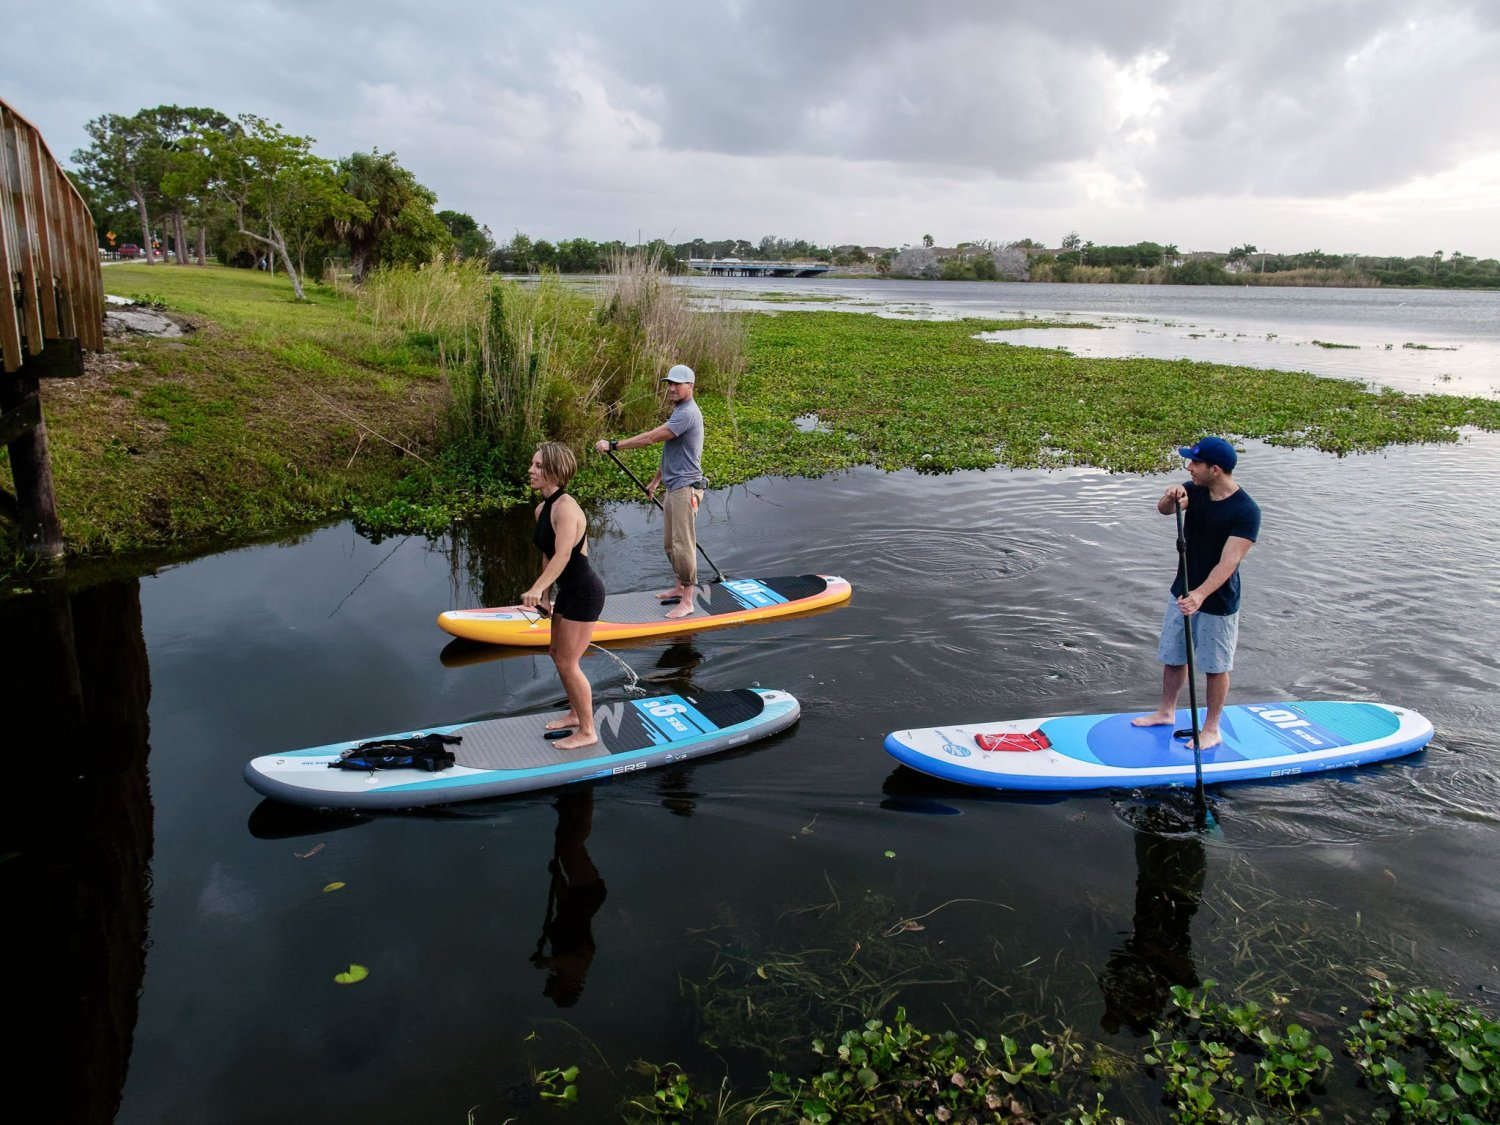 SUP paddlers on different size paddle boards